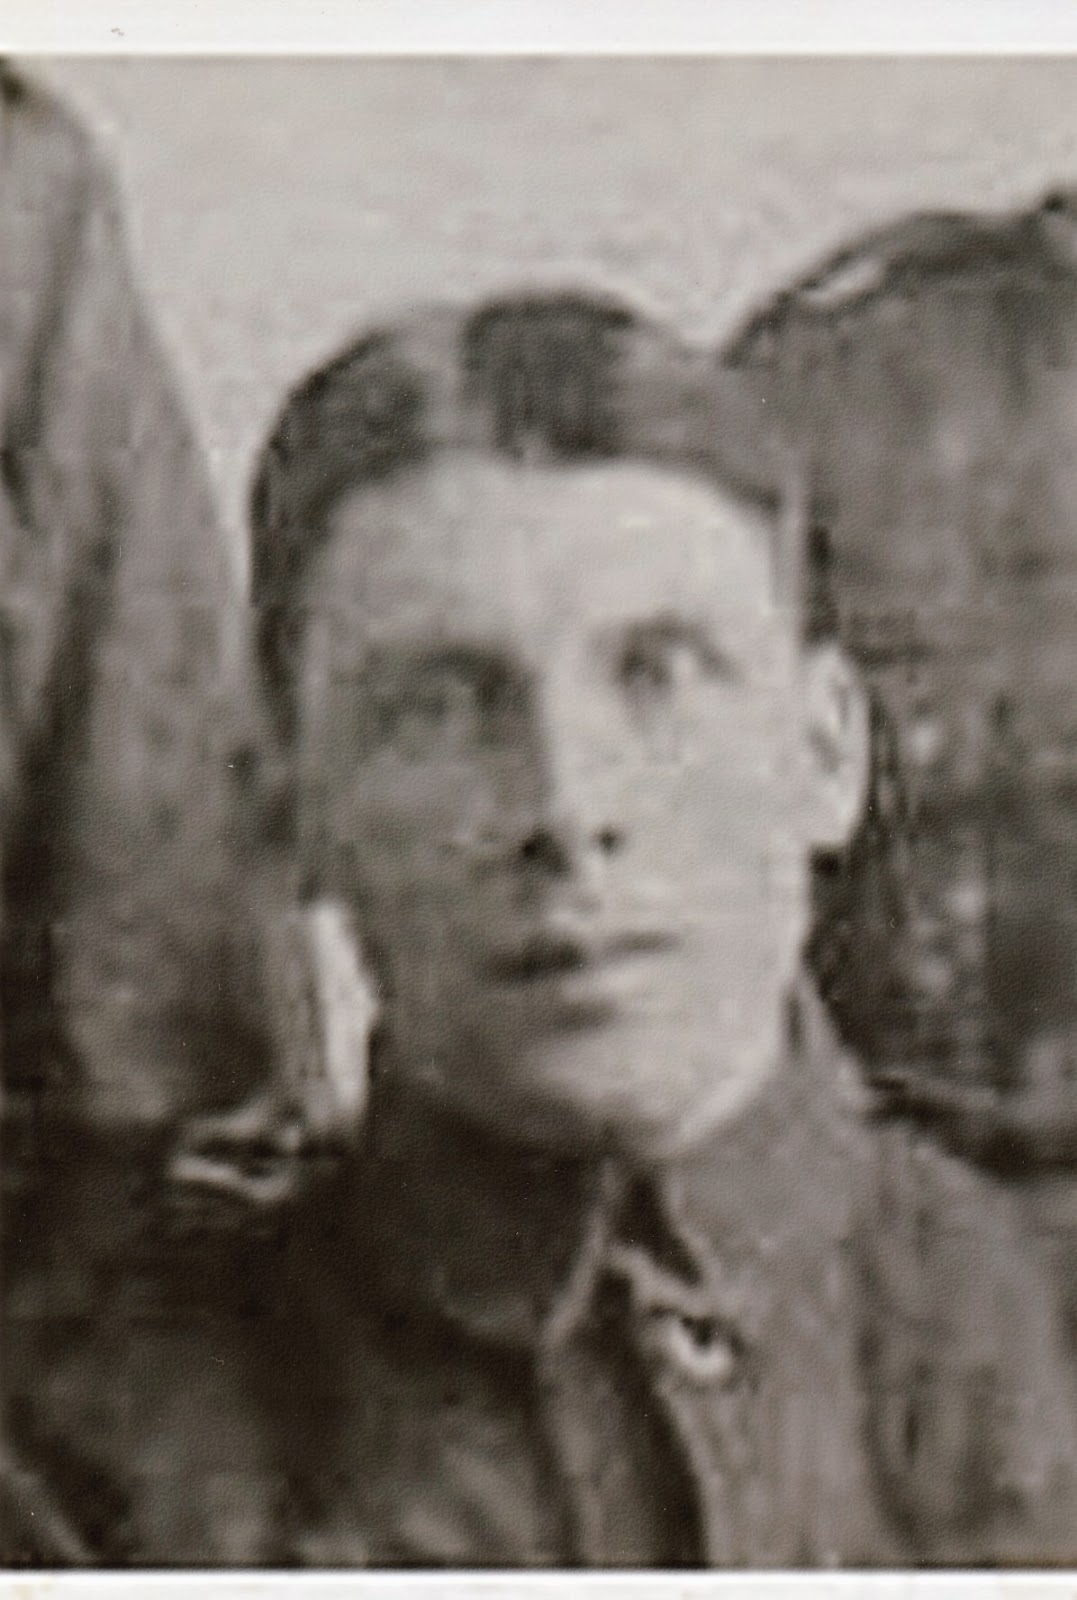 Tom Taylor Our Team Northorpe Hall Child And Family Trust Barton Upon Humber A Lincolnshire Town In The Great War 1914 1918